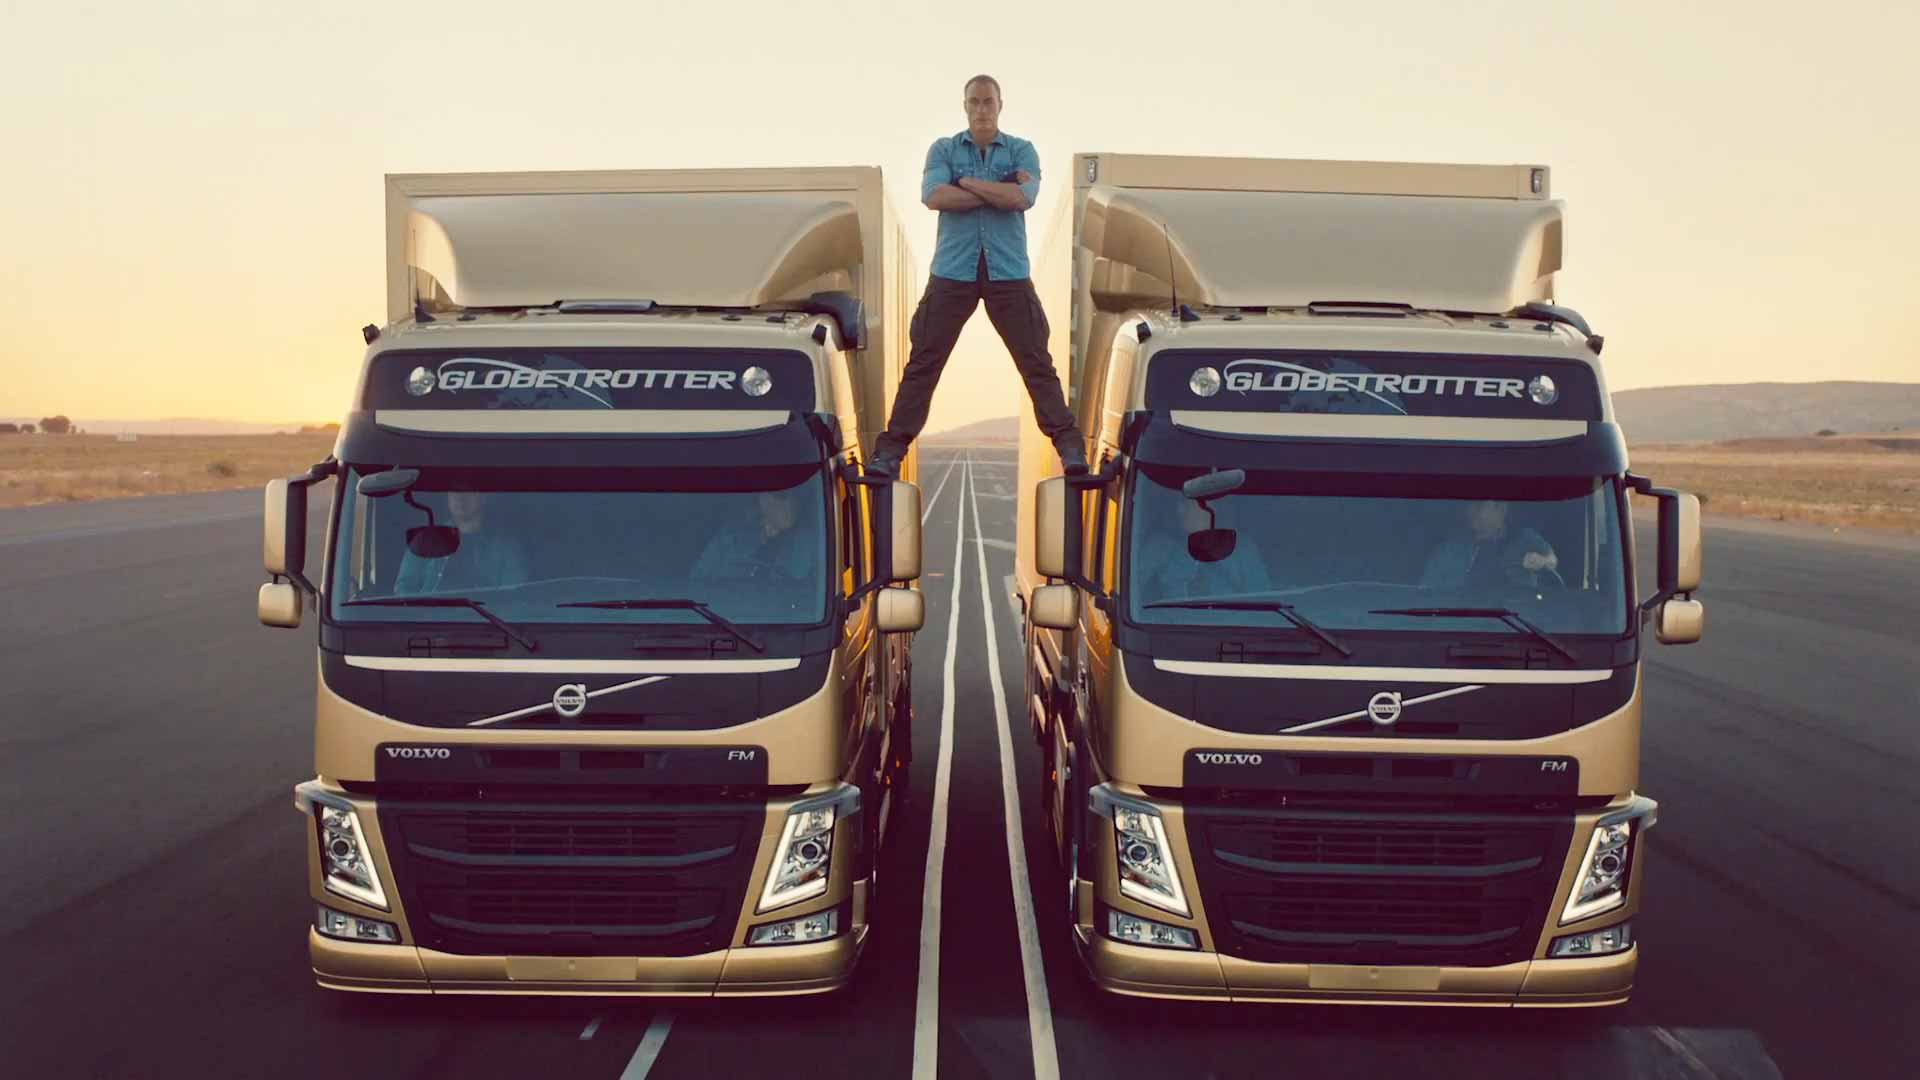 jean-claude-van-damme-and-2-volvo-trucks-epic-split-image10